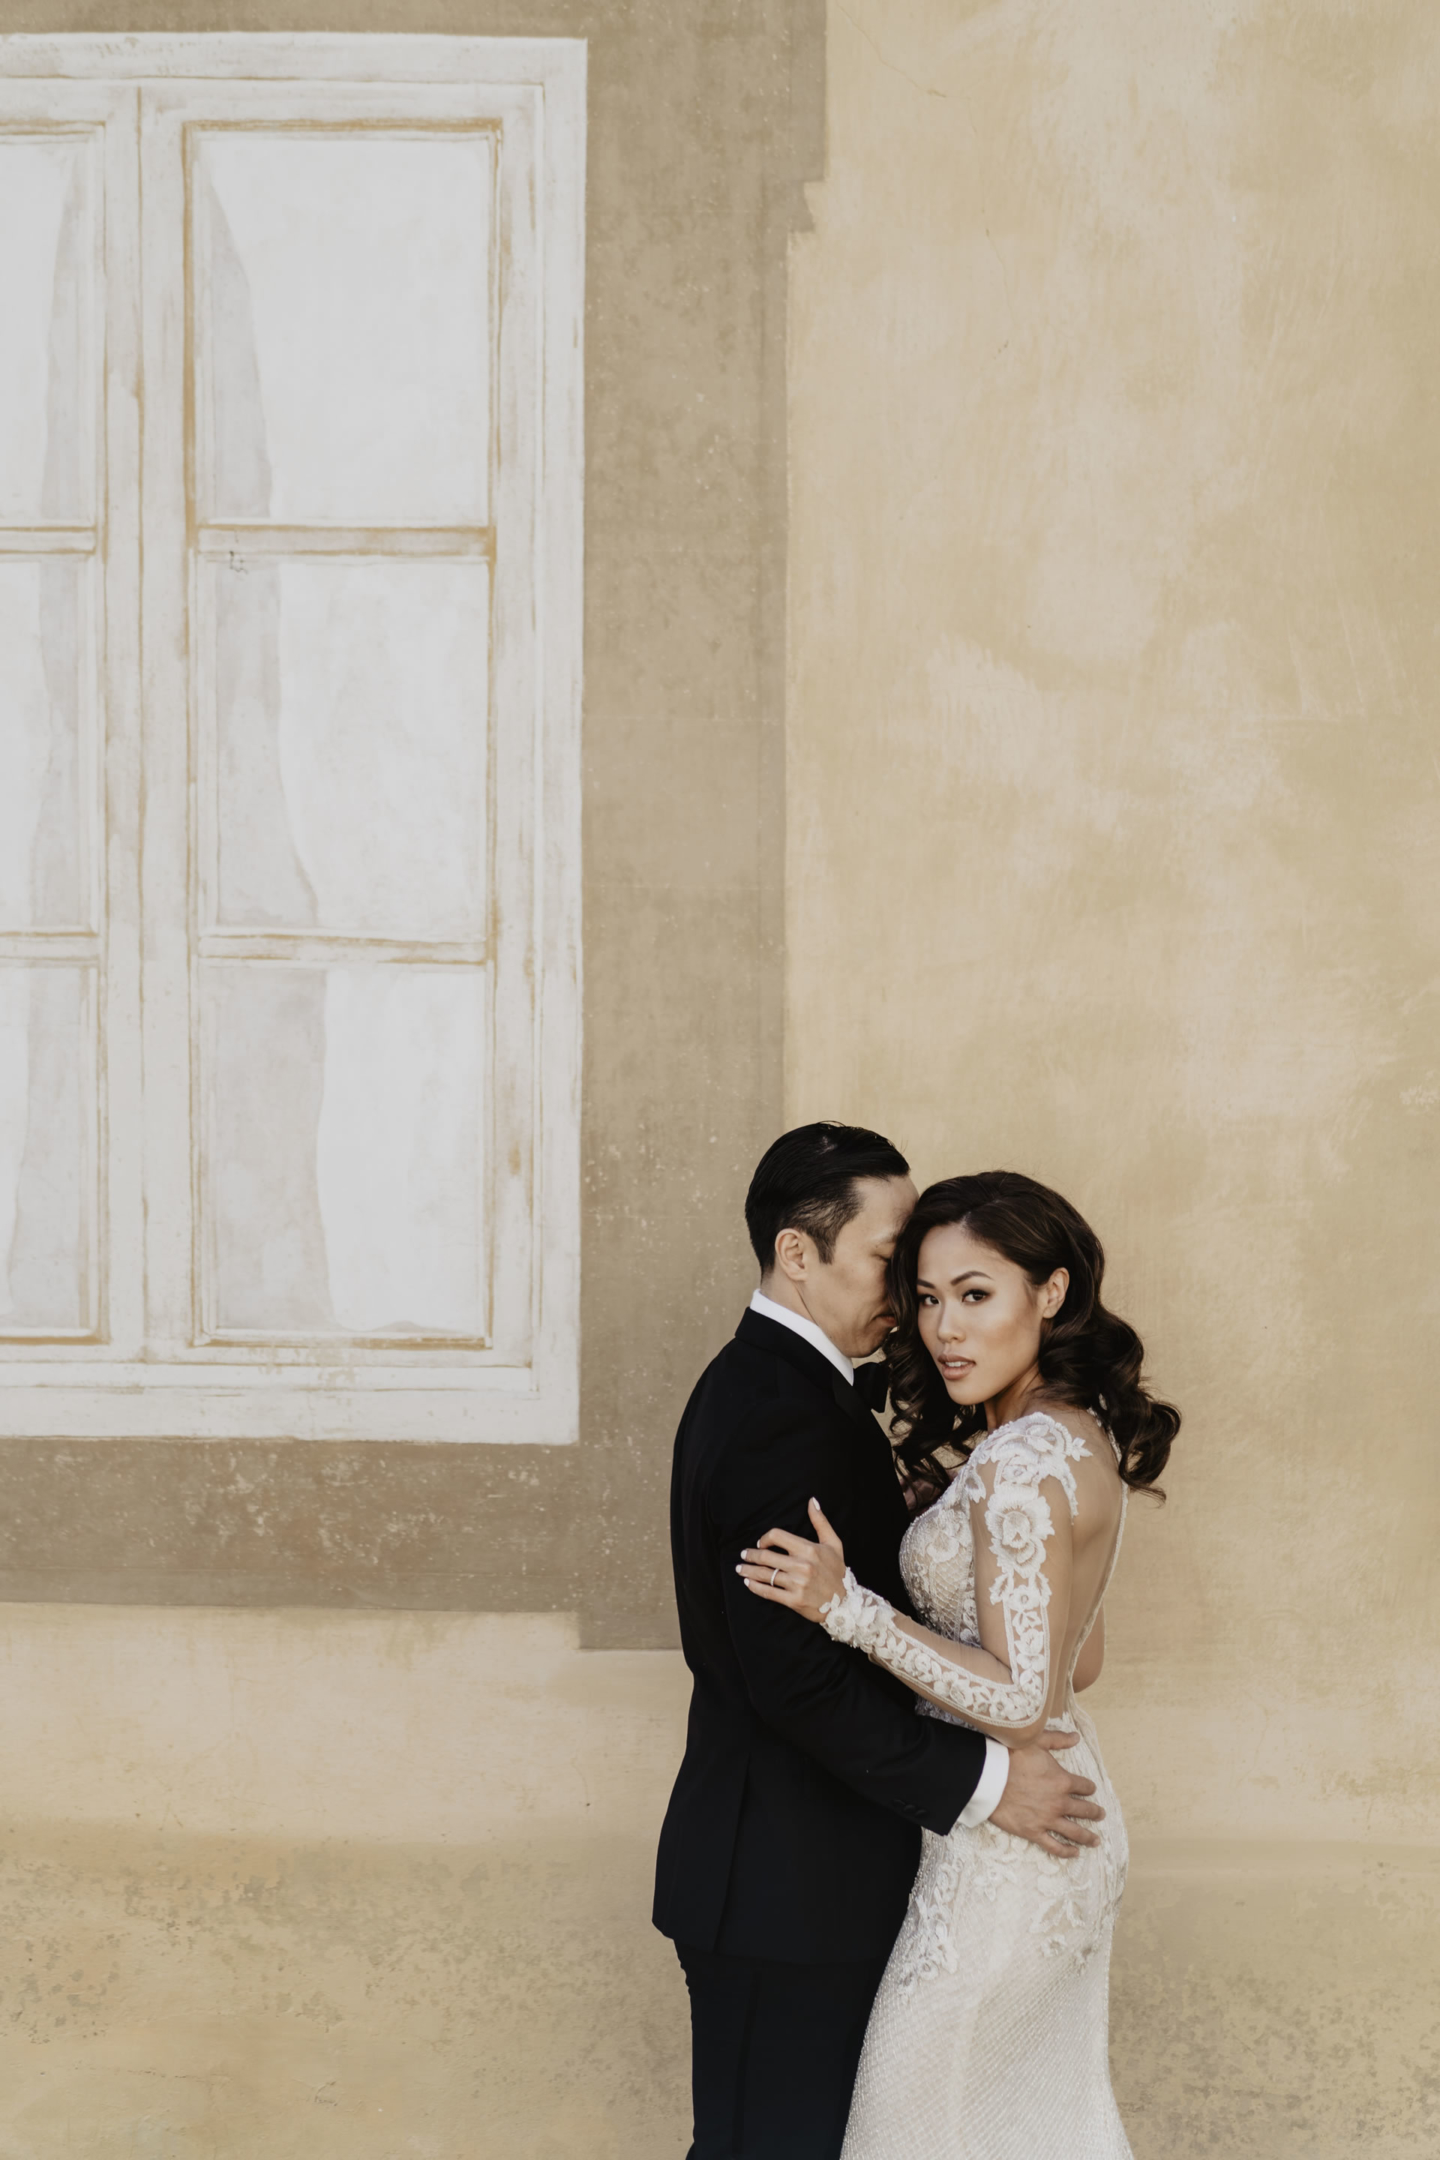 - 52 :: From Los angeles to Florence: a glamour asiatic wedding :: Luxury wedding photography - 51 ::  - 52